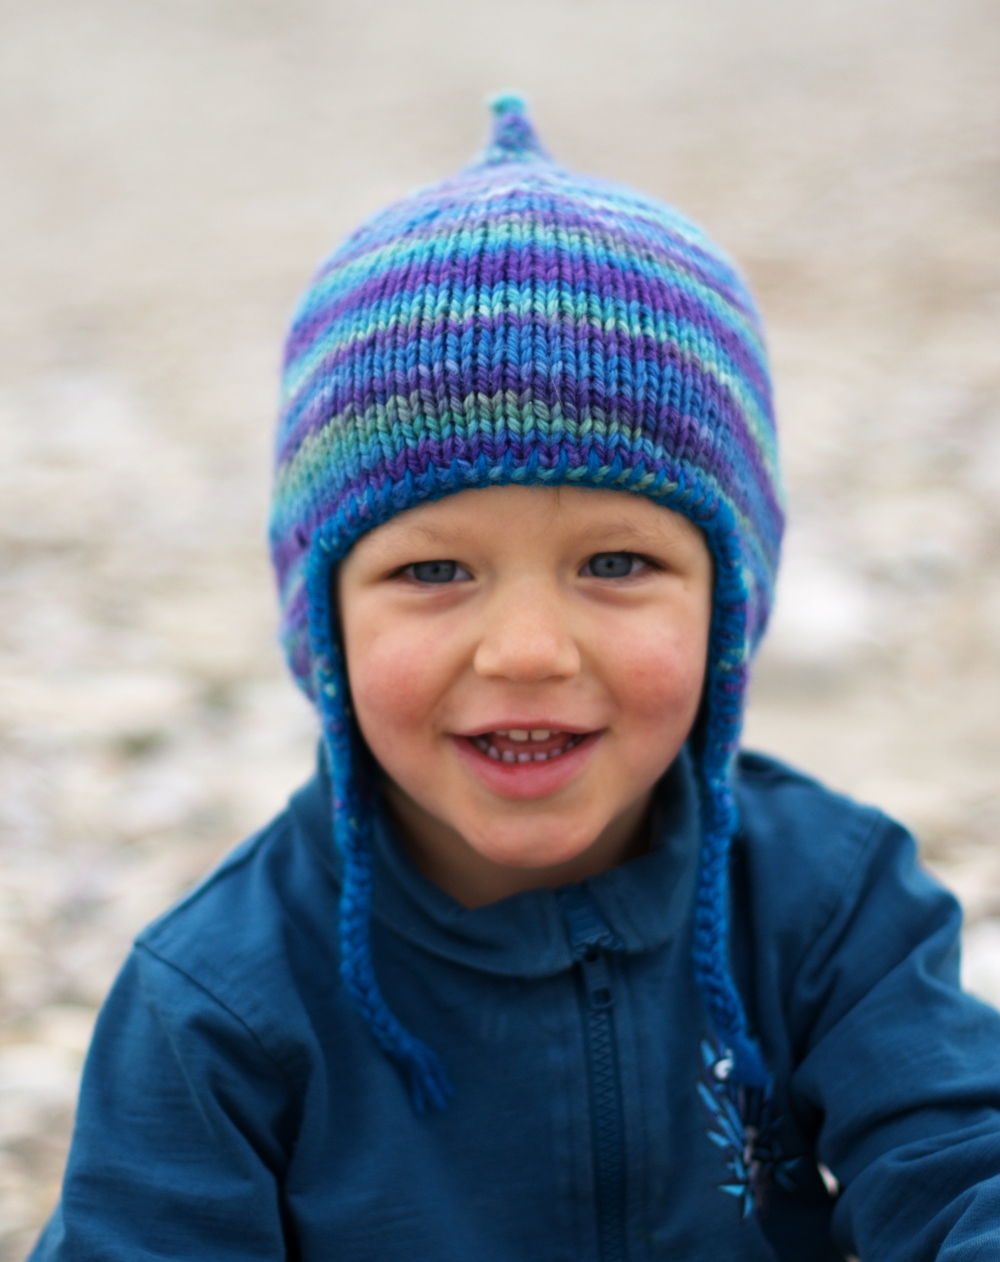 Bimple childs chullo pixie Hat knitting pattern for variegated yarn